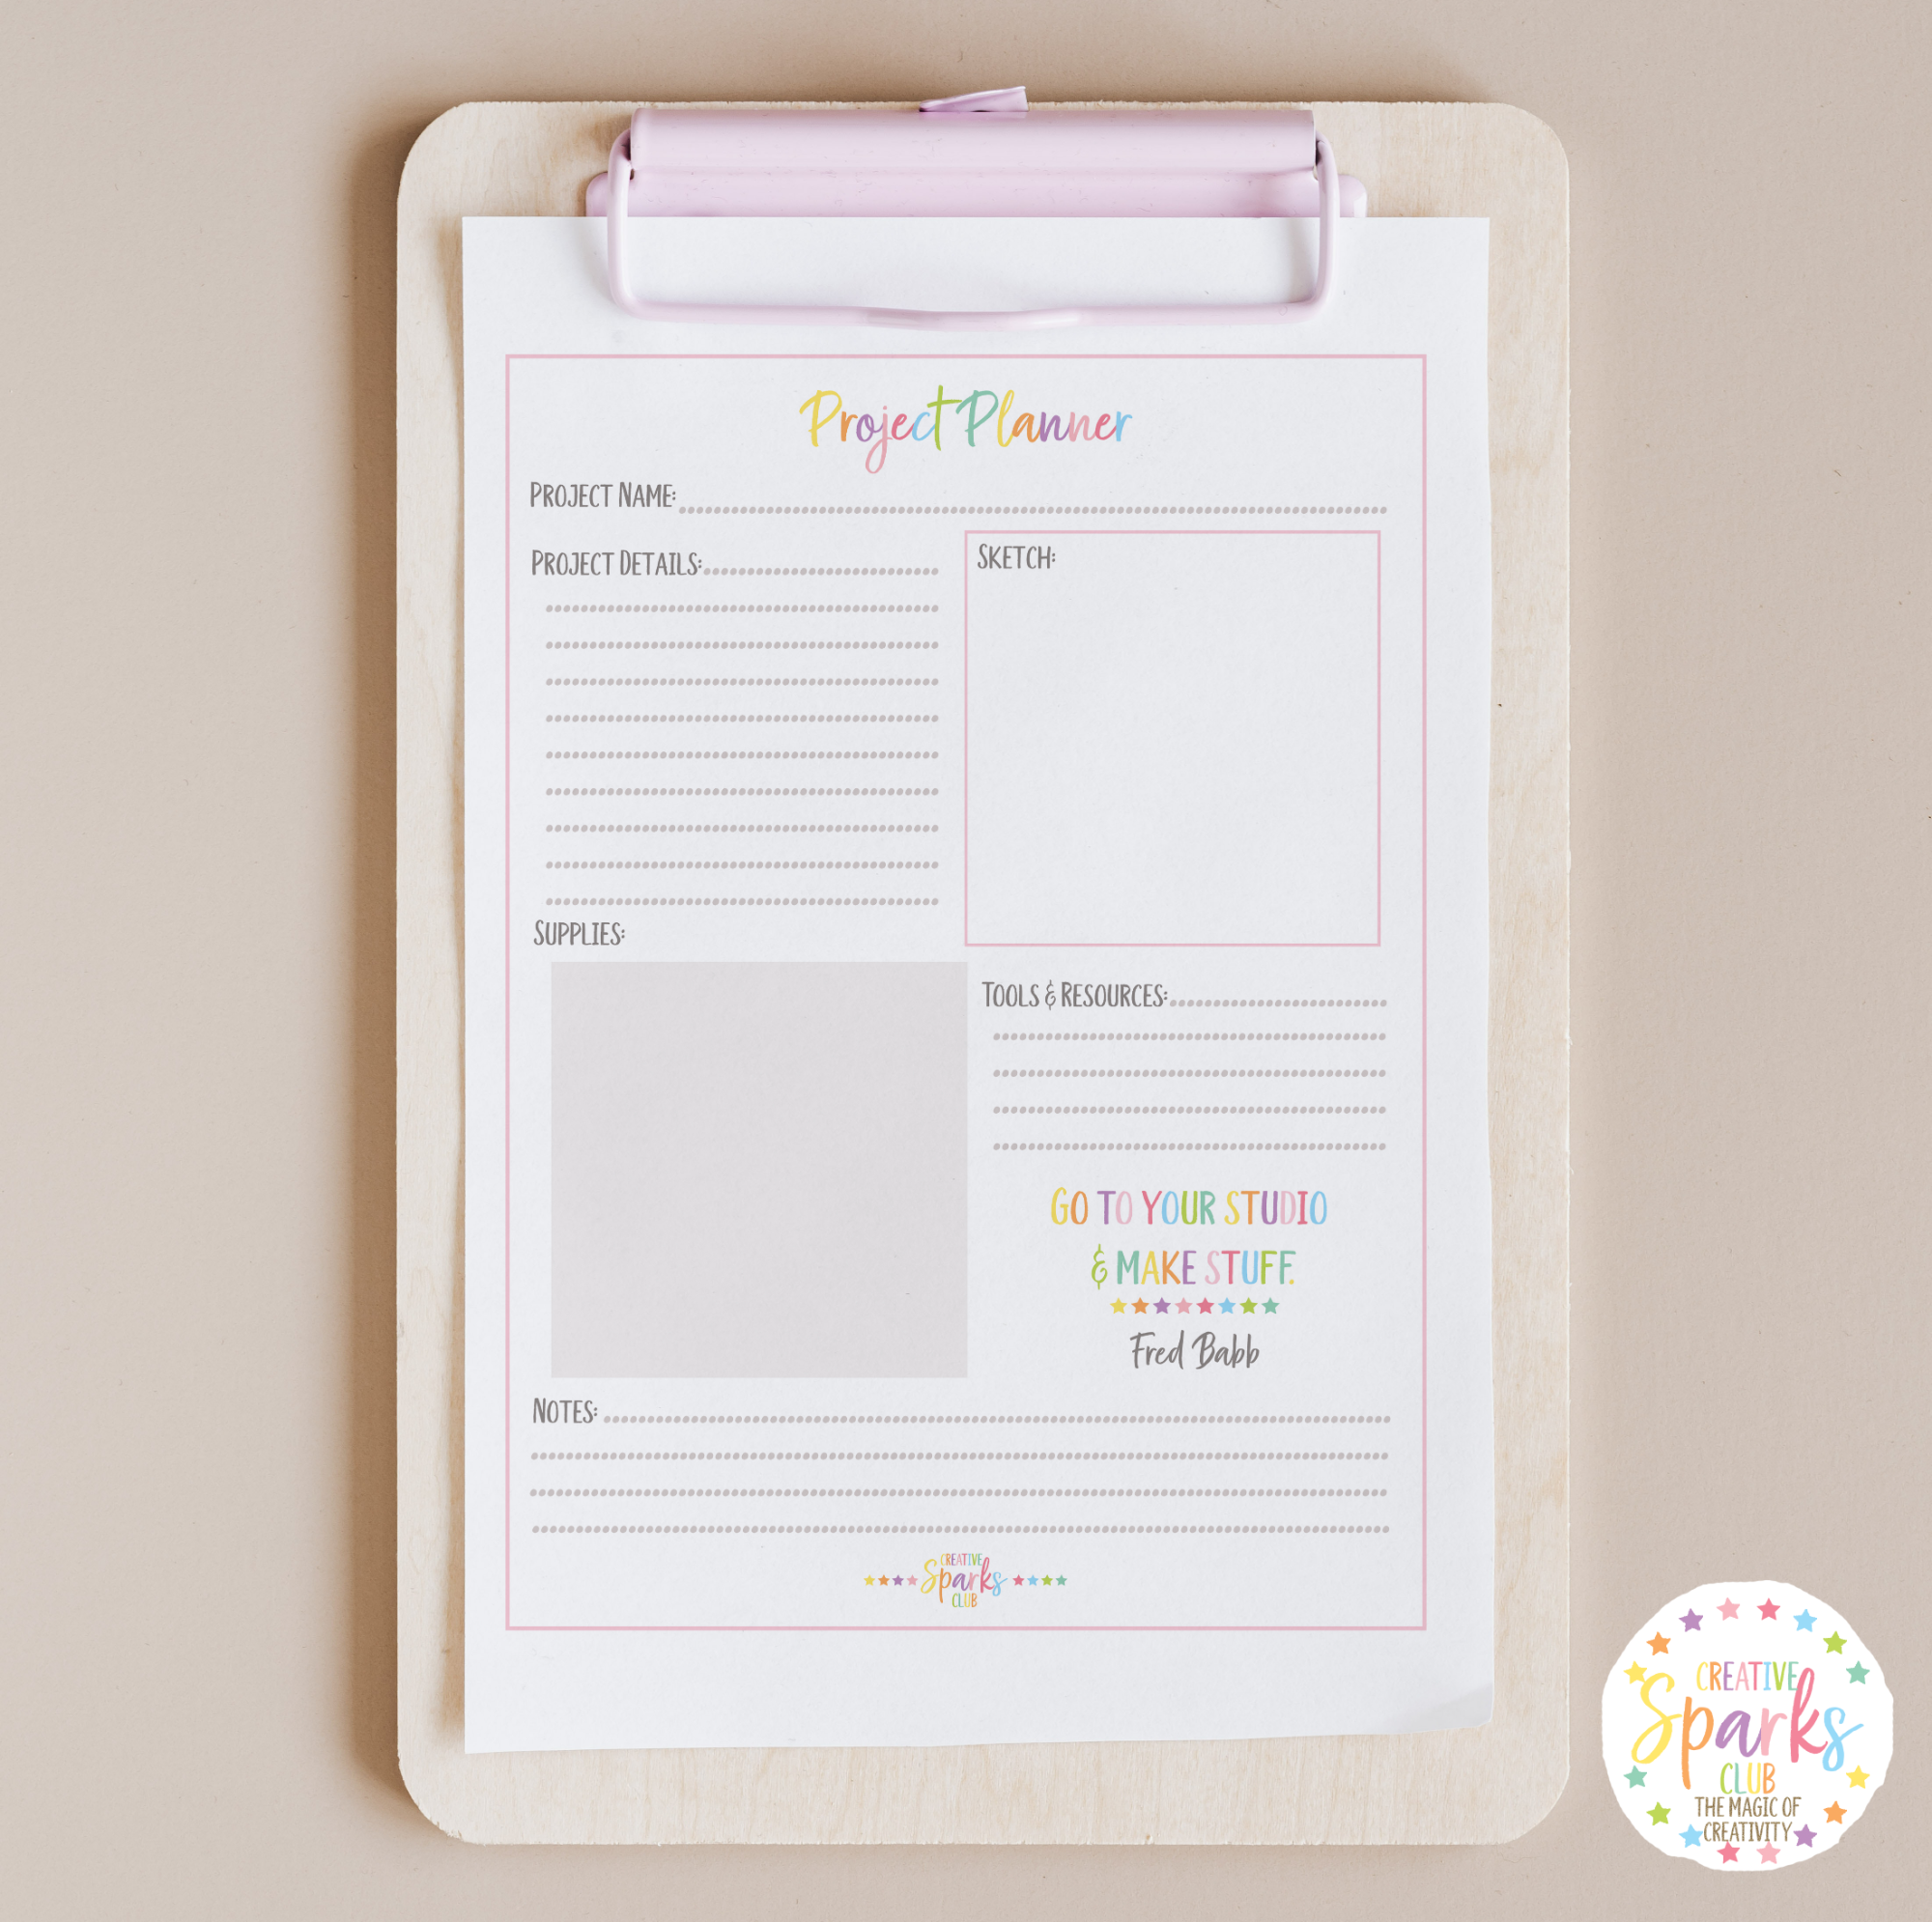 PROJECT PLANNER PDF DOWNLOAD ON CLIPBOARD